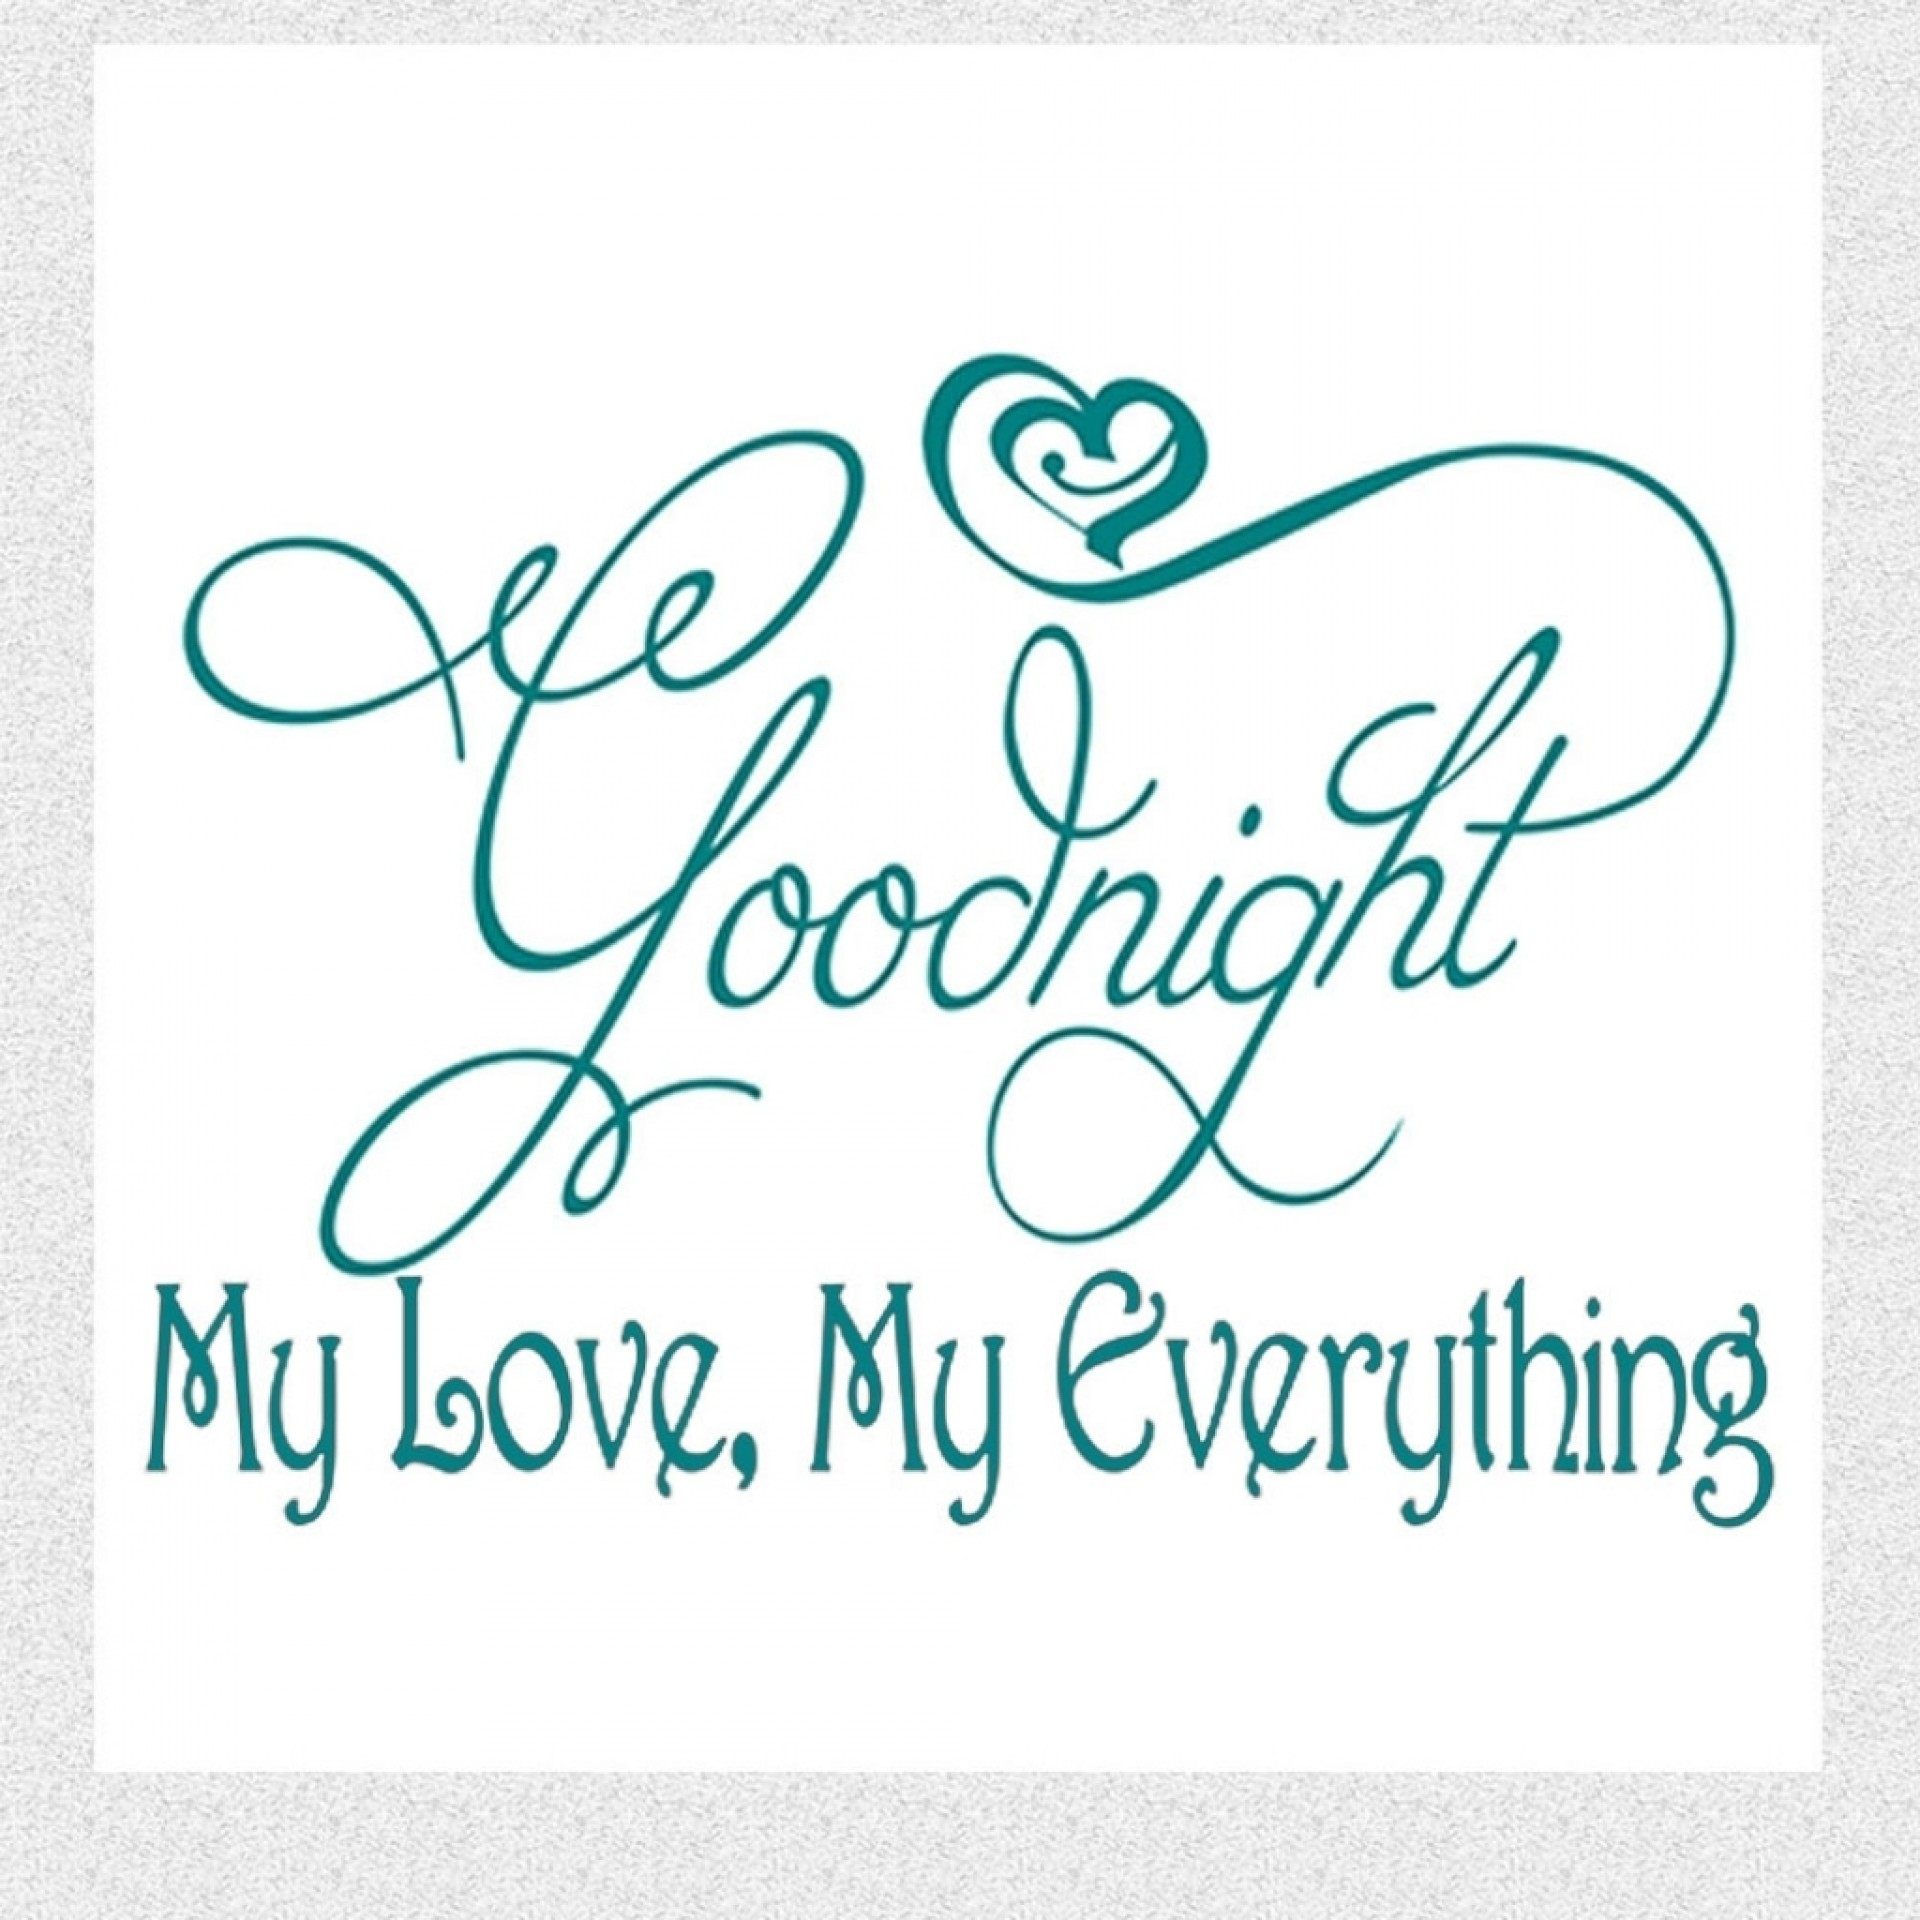 Download Goodnight My Love Quotes Images Iphone 7. wallpapers …